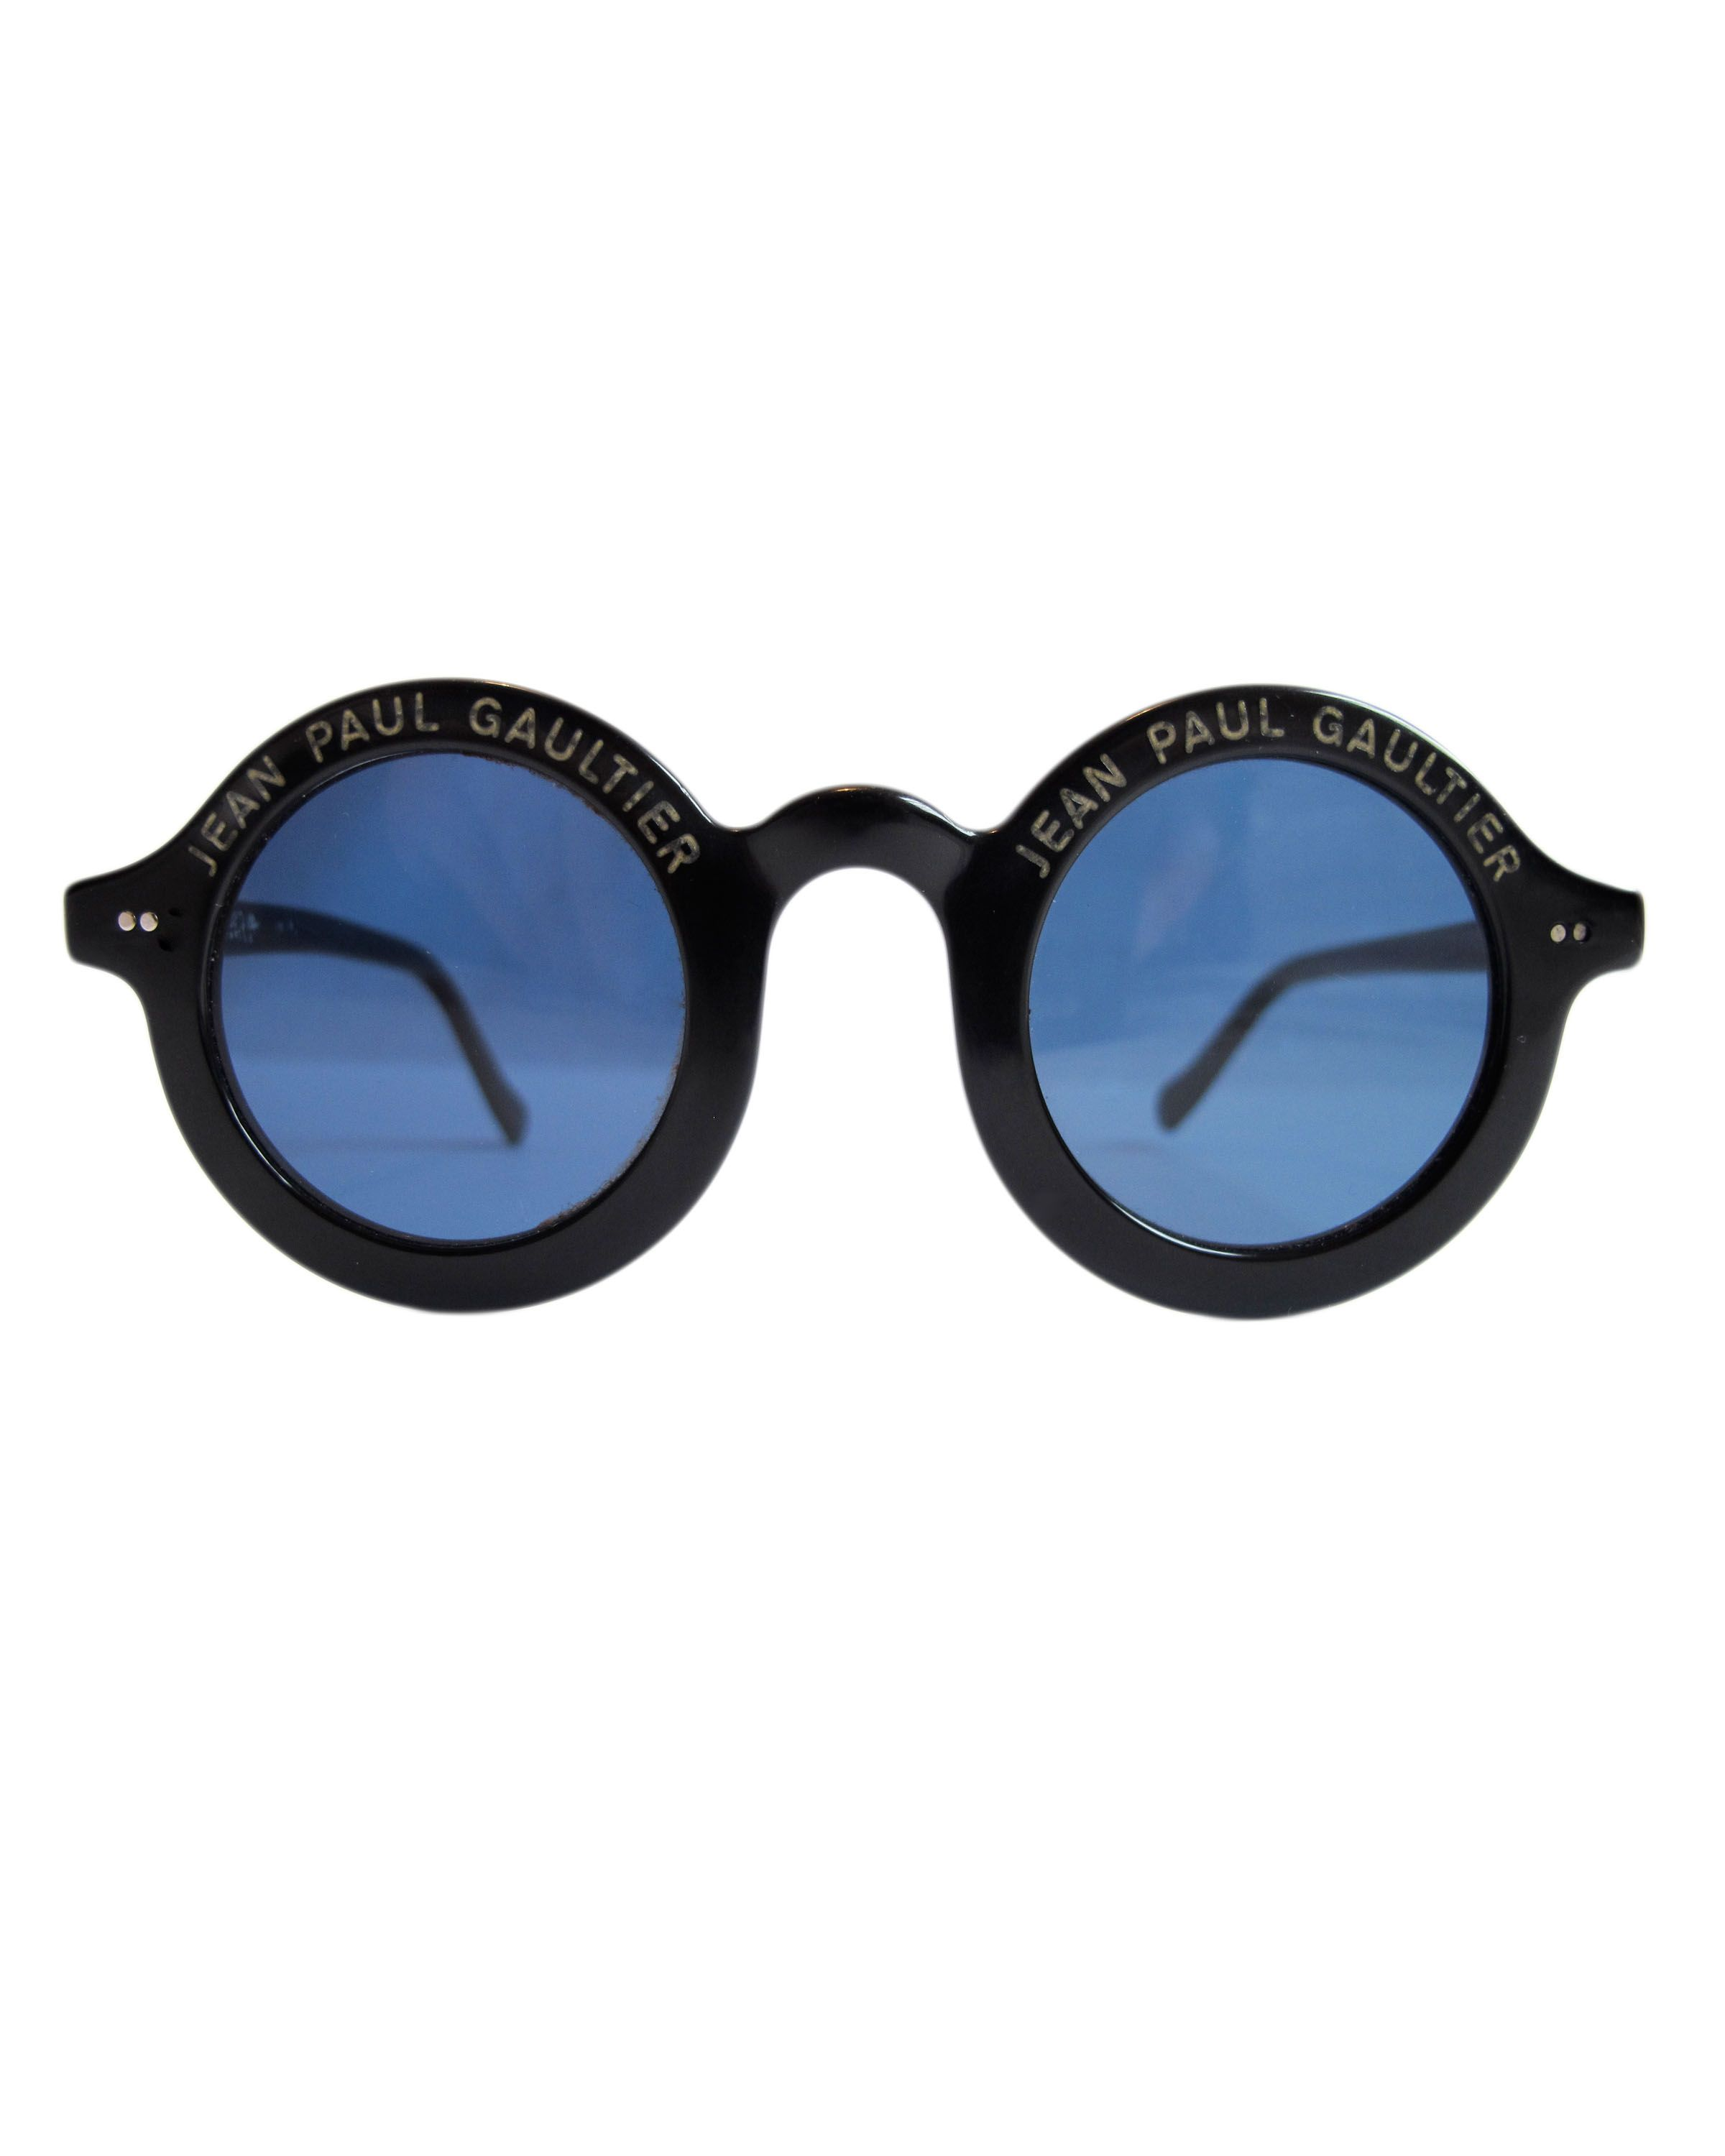 jean paul gaultier sunglasses - Google Search | faves tres | Pinterest